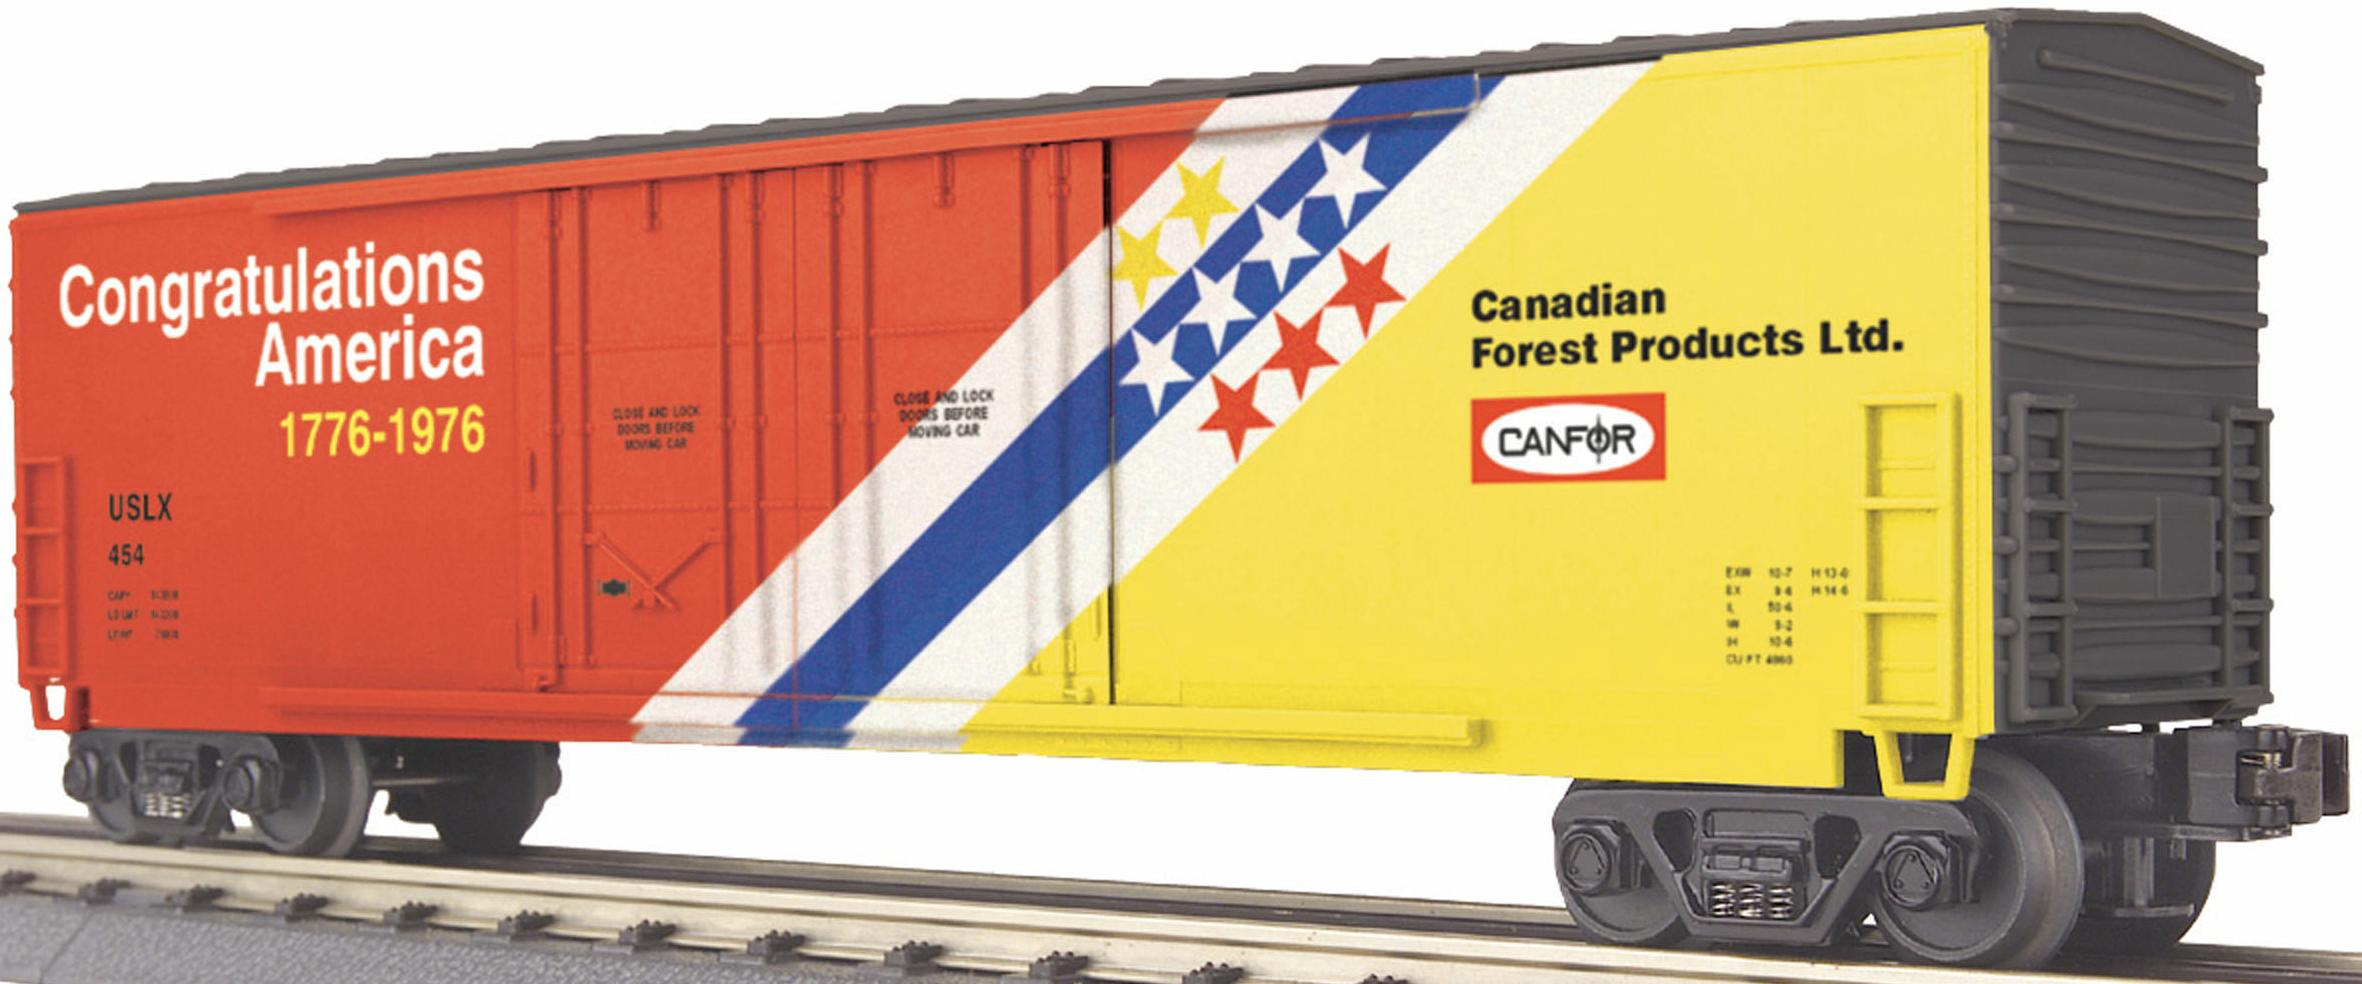 CANFOR Congratulations America 50-Foot Double-Door Plugged Box Car image